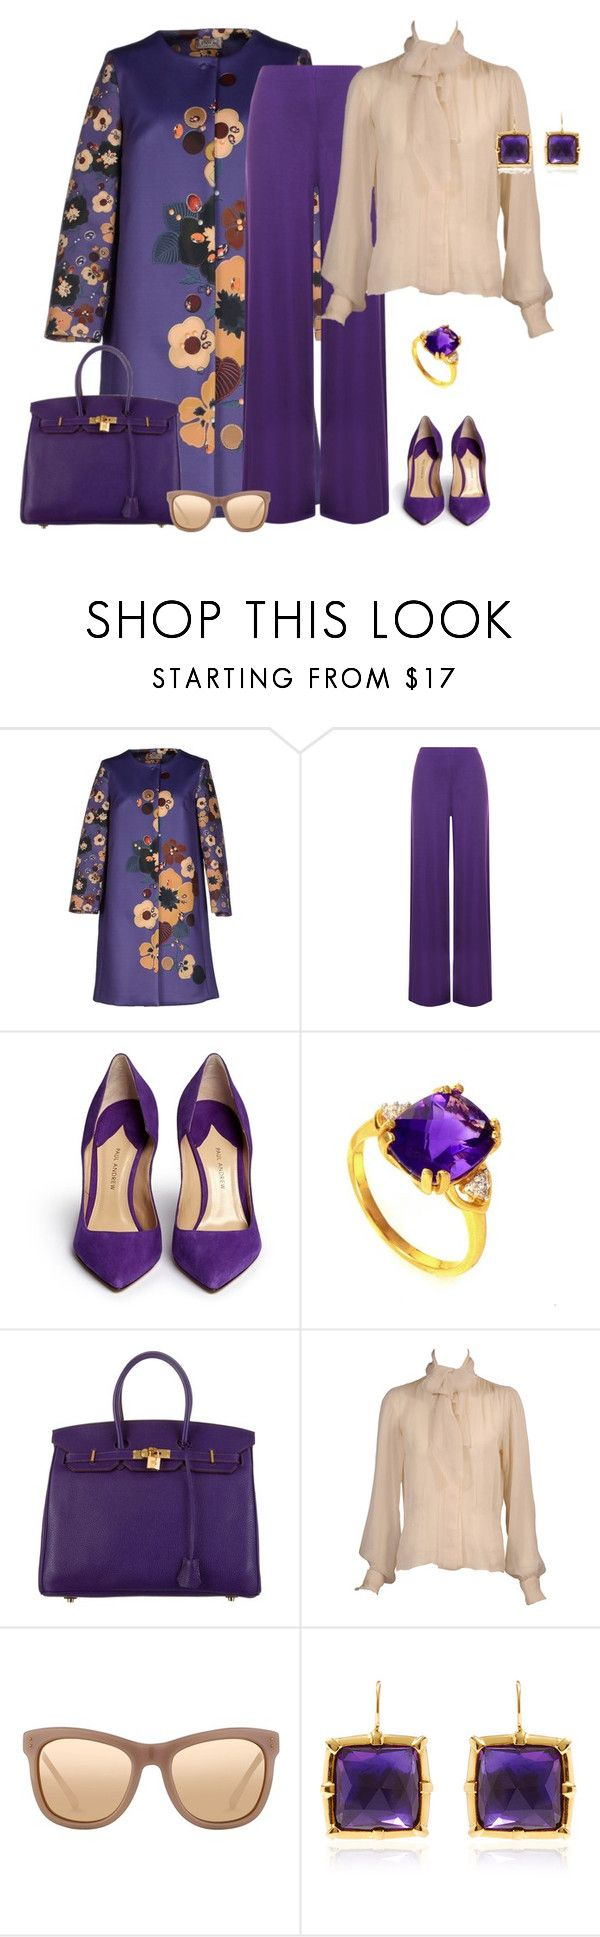 """""""outfit 2399"""" by natalyag ❤ liked on Polyvore featuring Eddy B., WearAll, Paul Andrew, Hermès, Yves Saint Laurent, Linda Farrow and Larkspur & Hawk"""